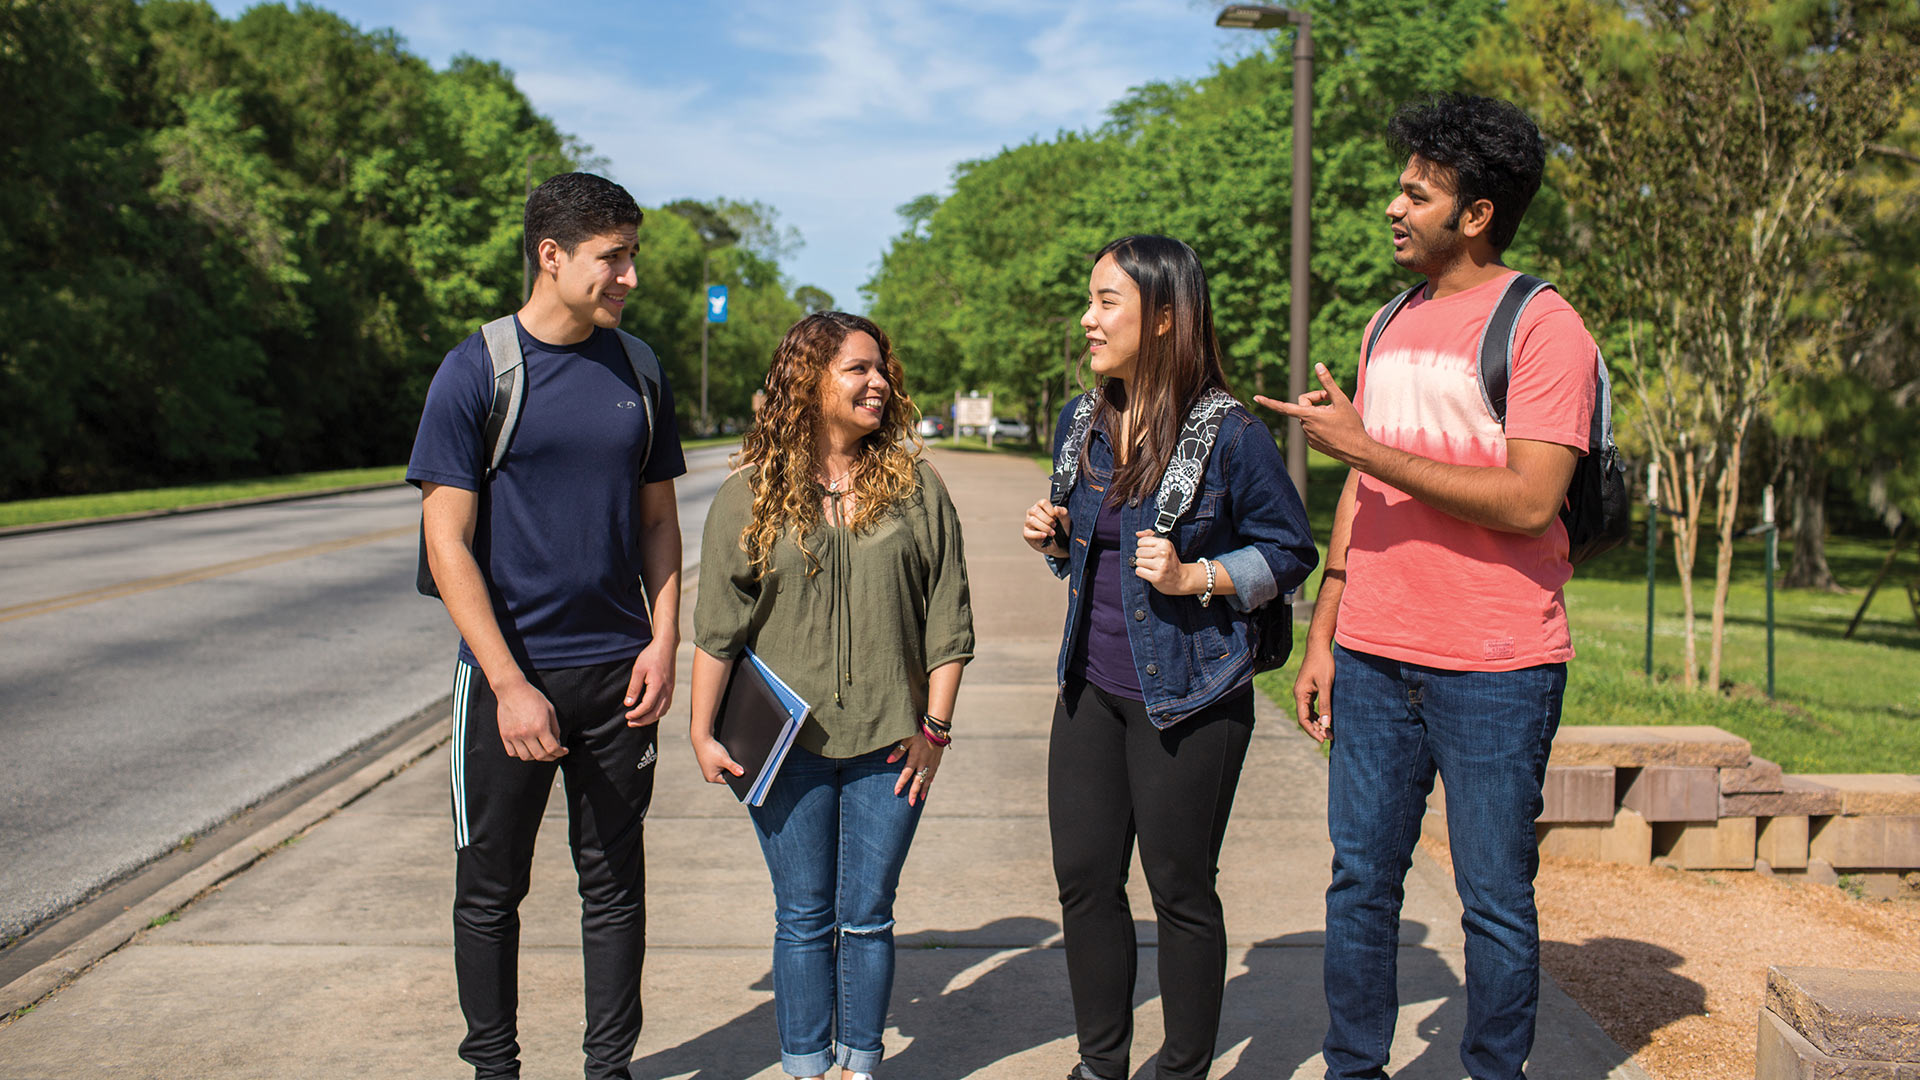 Share your input to improve campus racial climate at UH-Clear Lake